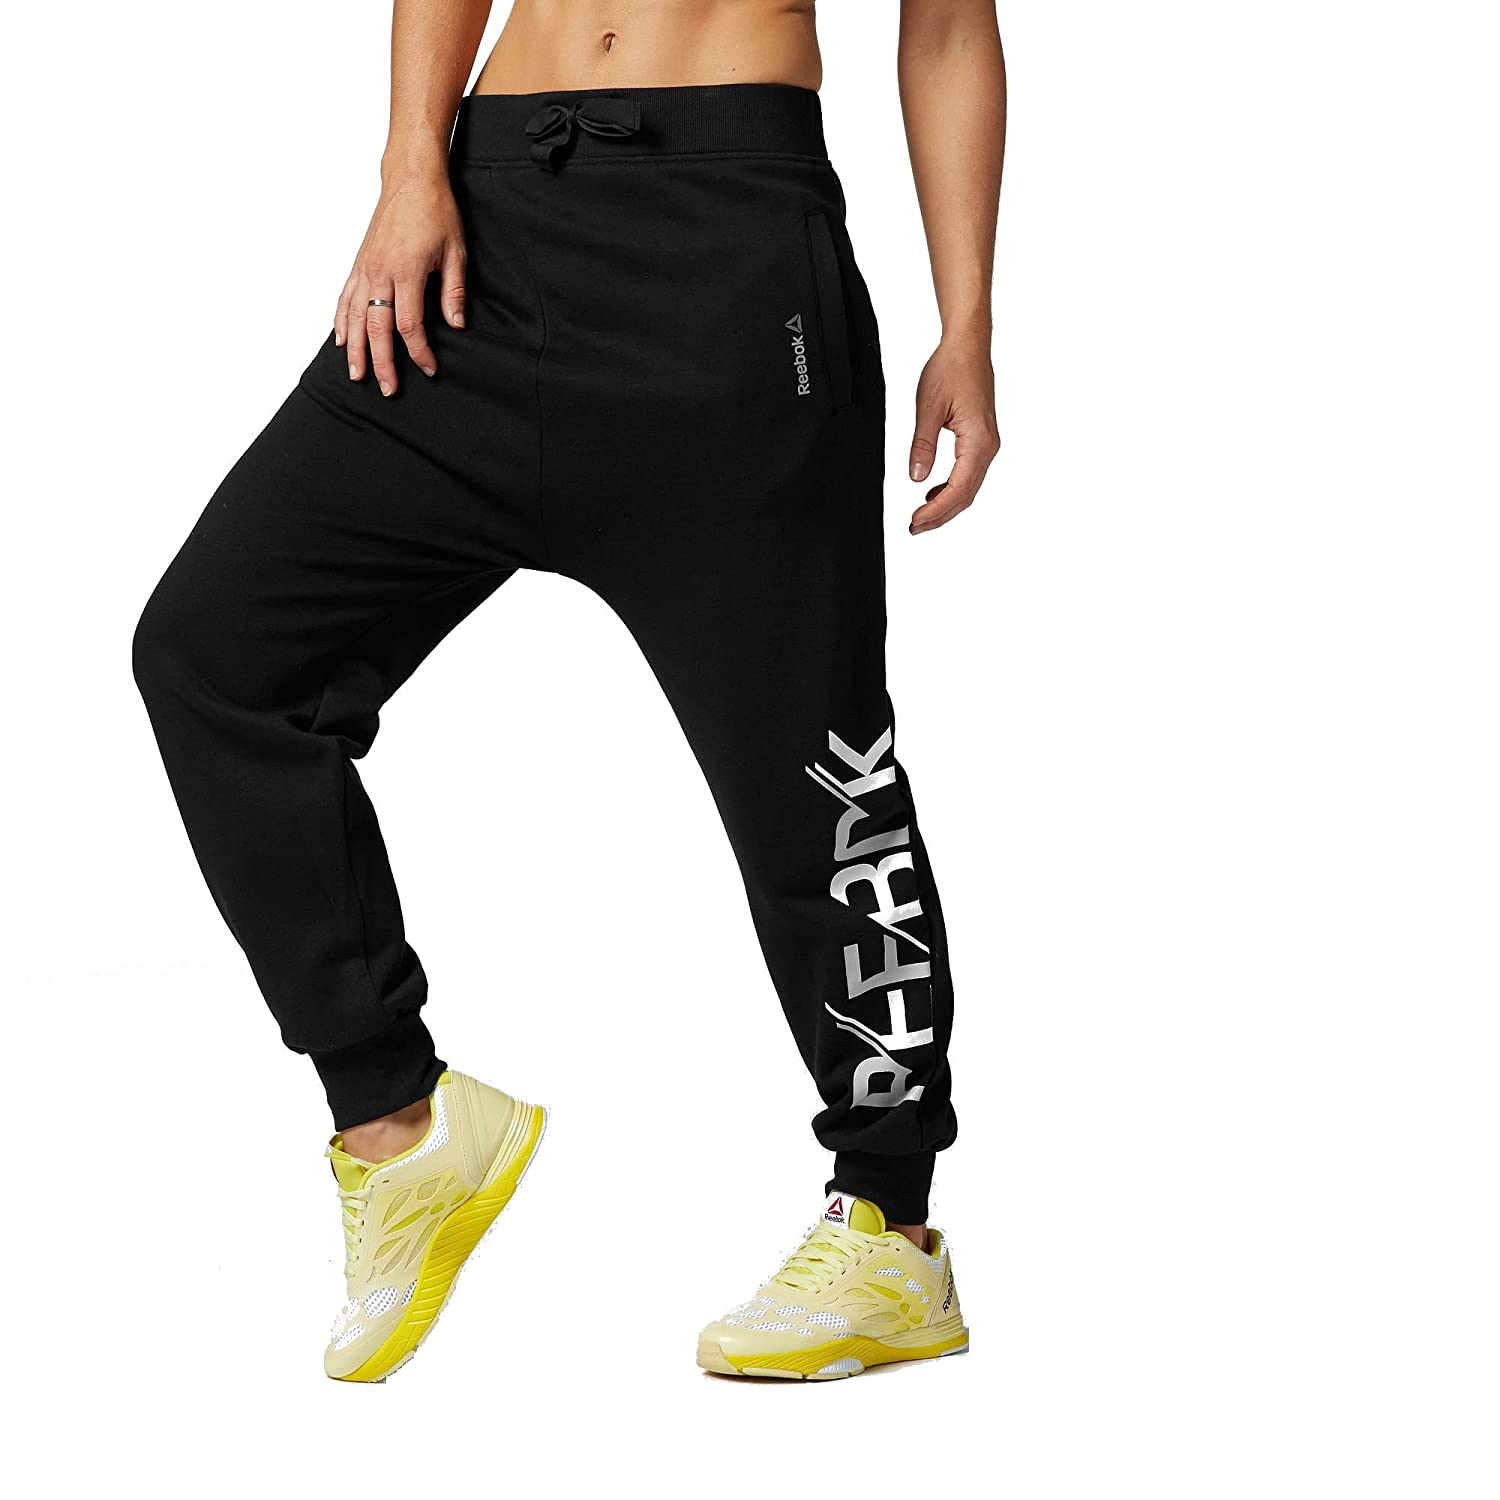 REEBOK Feel The Rhythm 2.0 Knit Pant Damen Tanzhose Fitness